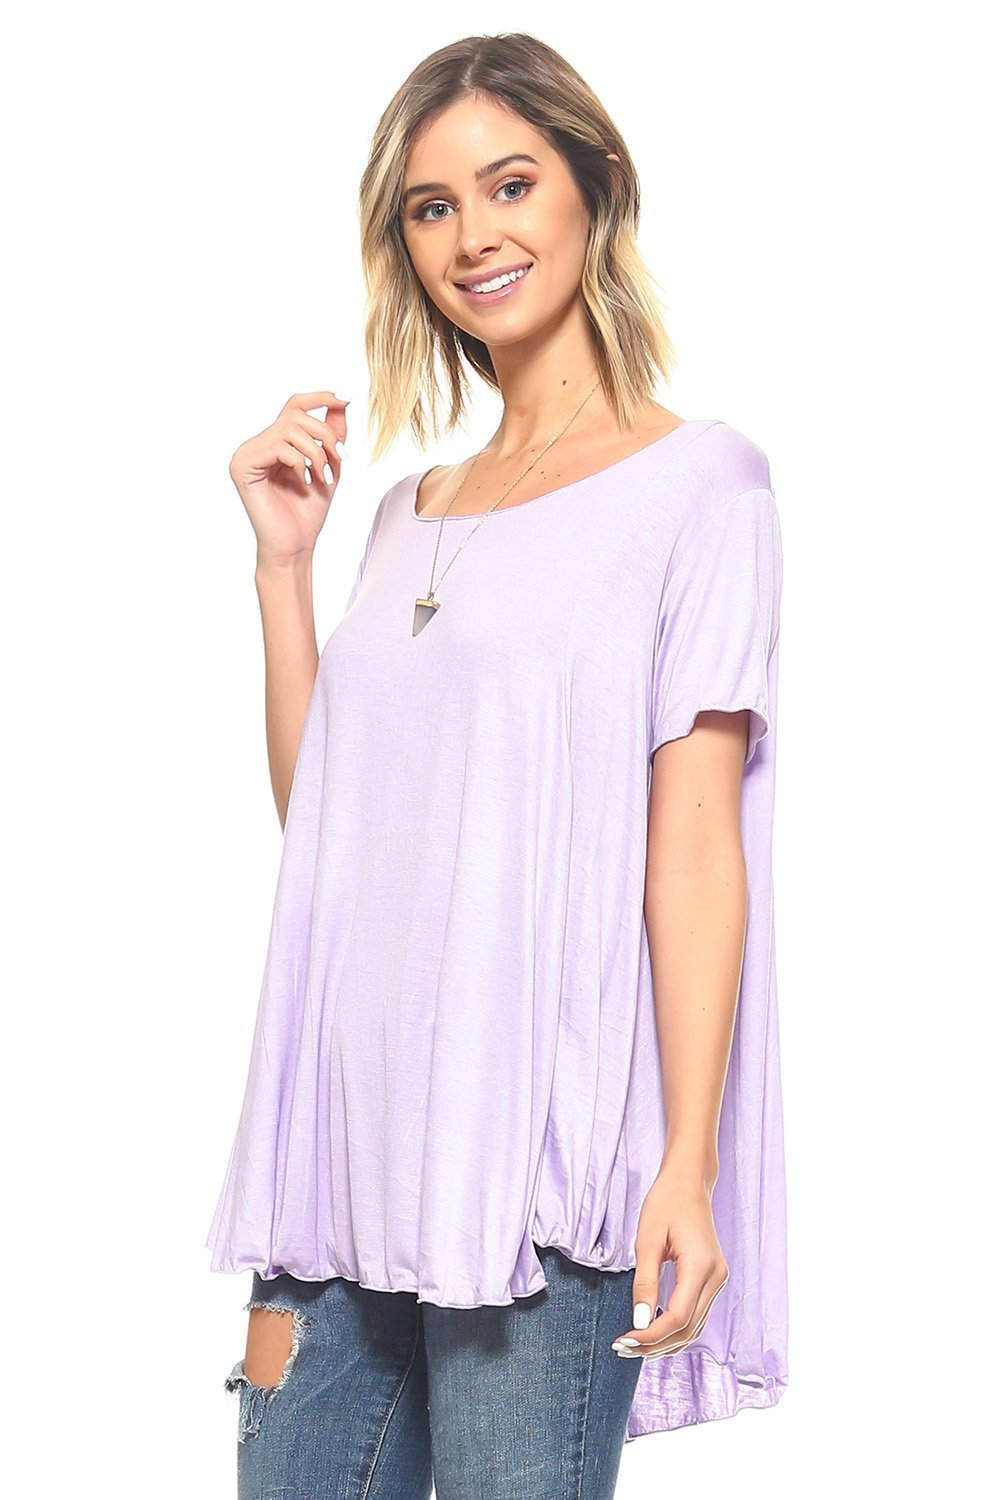 Simplicitie Women's Plus Size Summer Short Sleeve Loose Casual Tee T-Shirt Tunic Top - Lavender, 2X - Made in USA